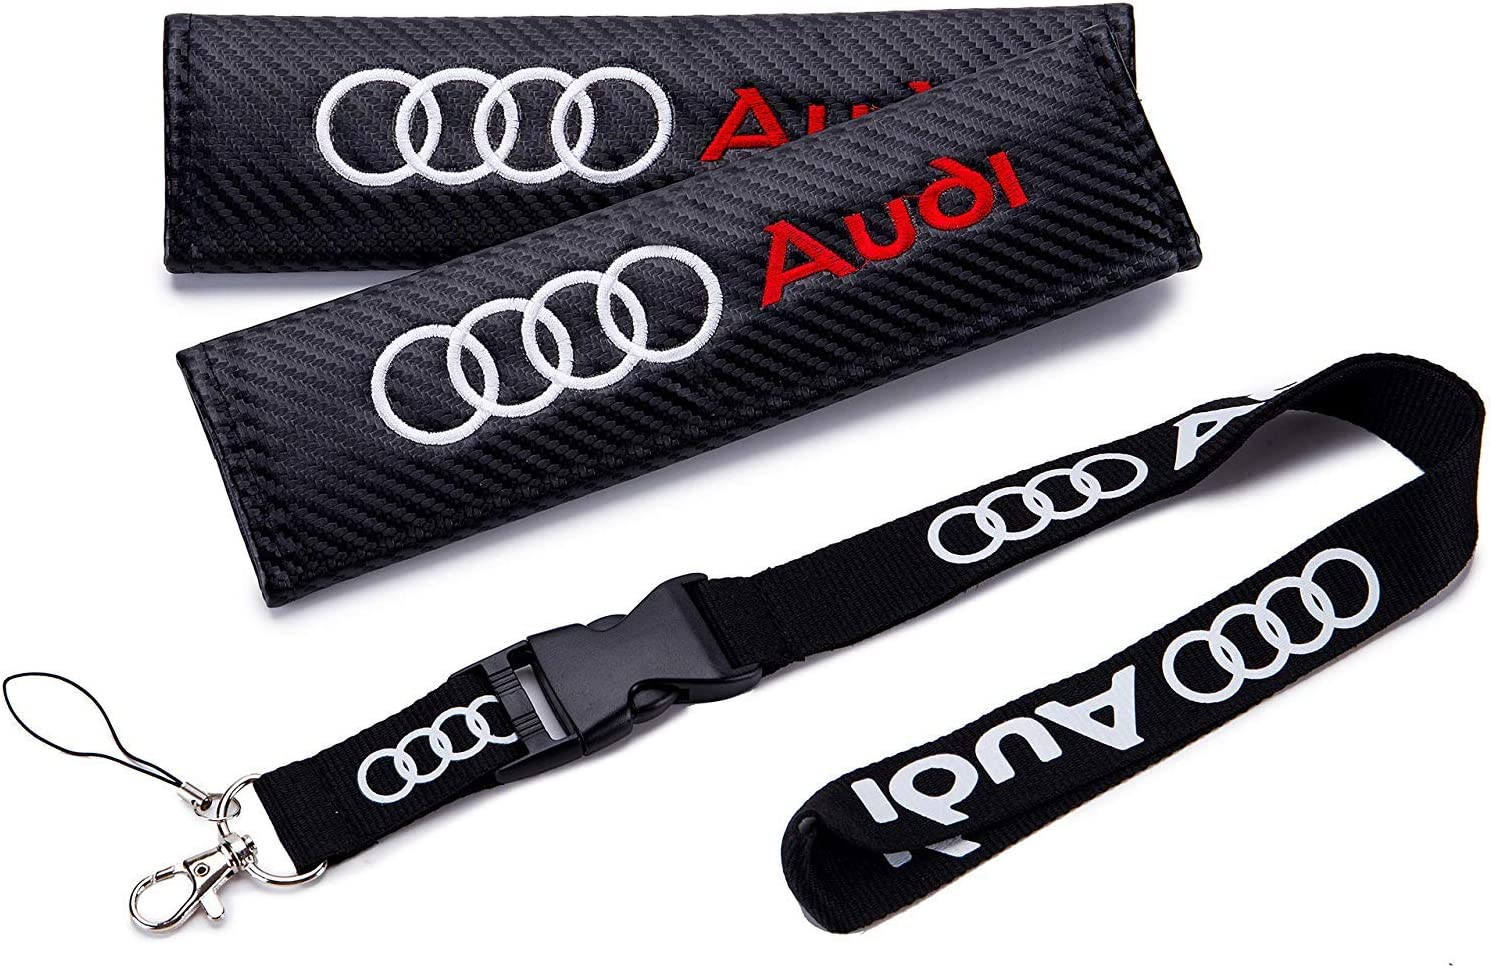 Red RV Style Keychain for AUDI Carbon Embroidery Seat Belt Cover Shoulder Pads